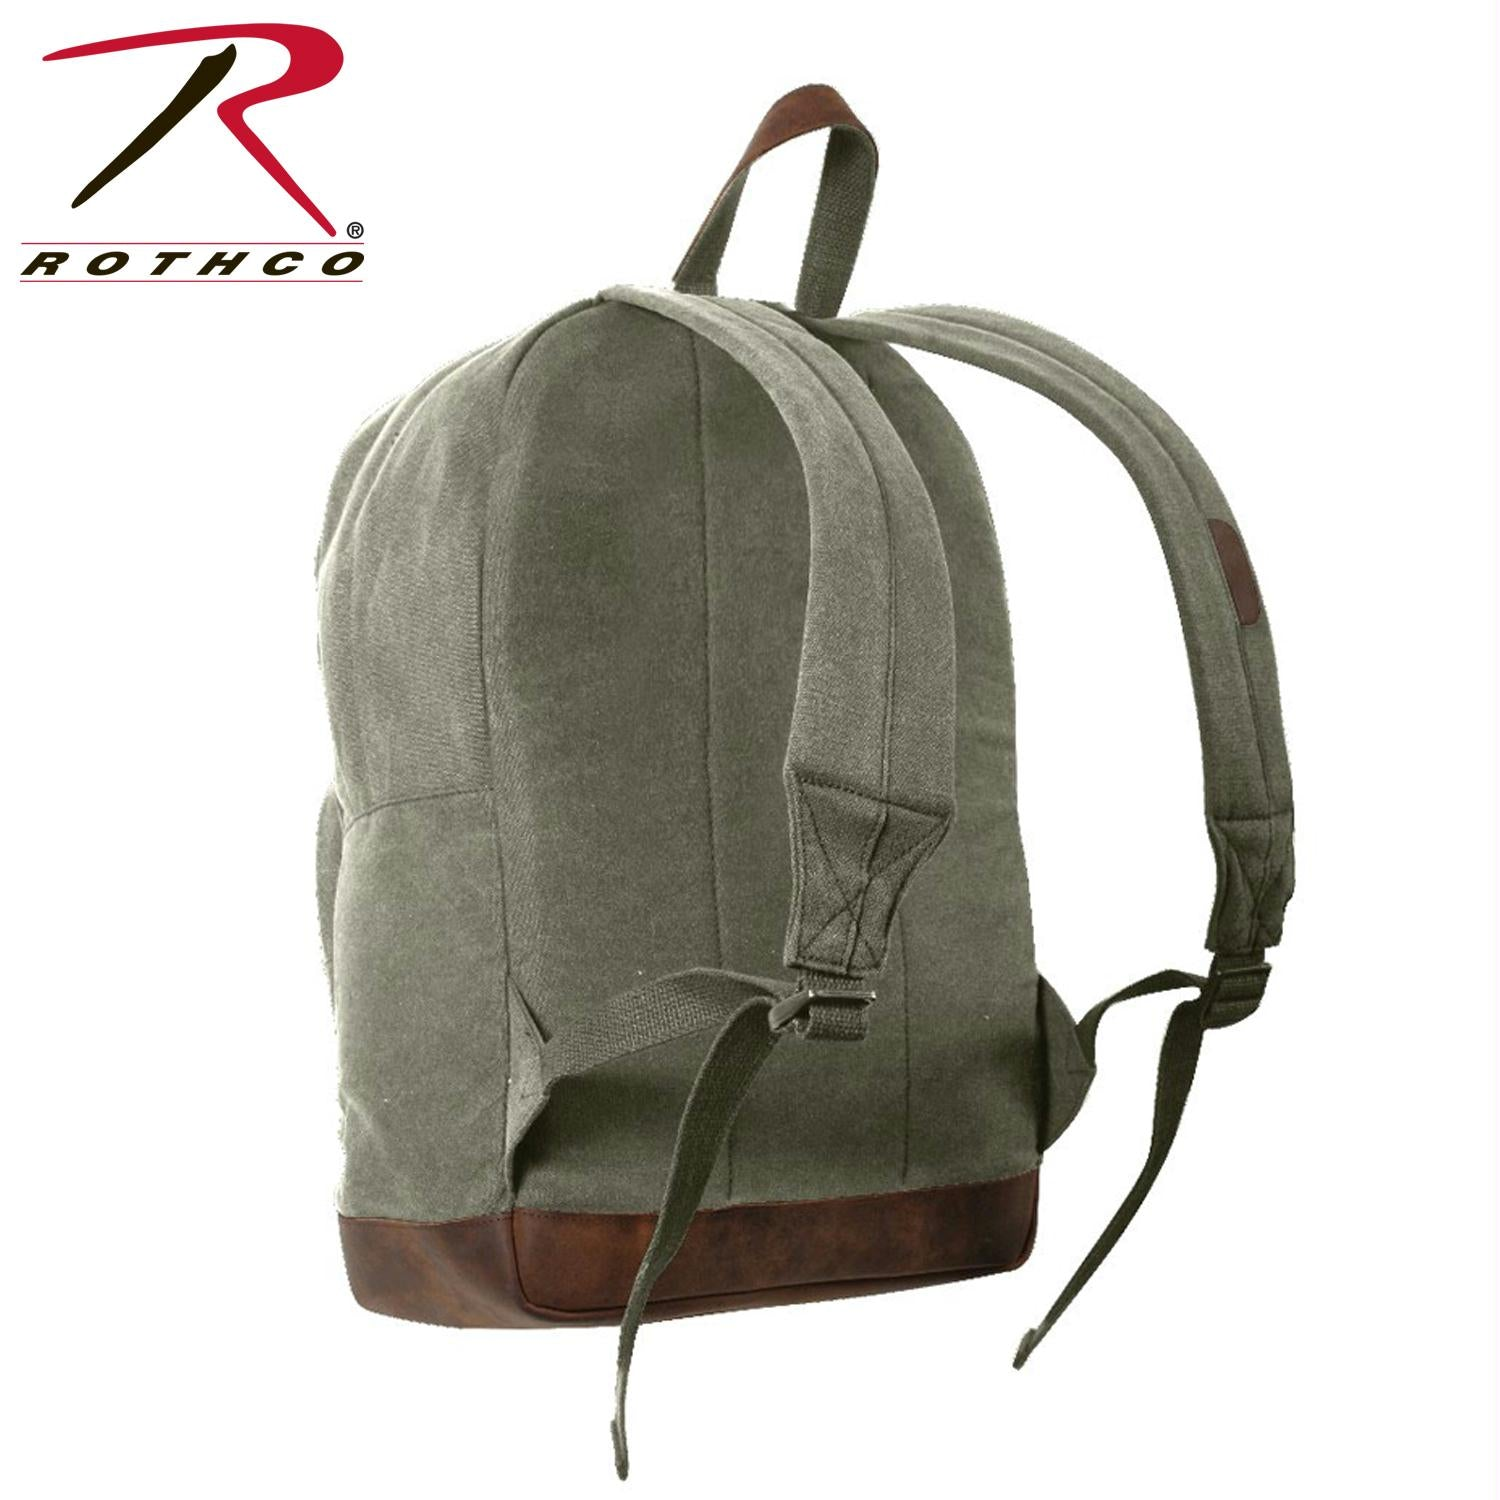 Rothco Vintage Canvas Teardrop Backpack With Leather Accents - Olive Drab